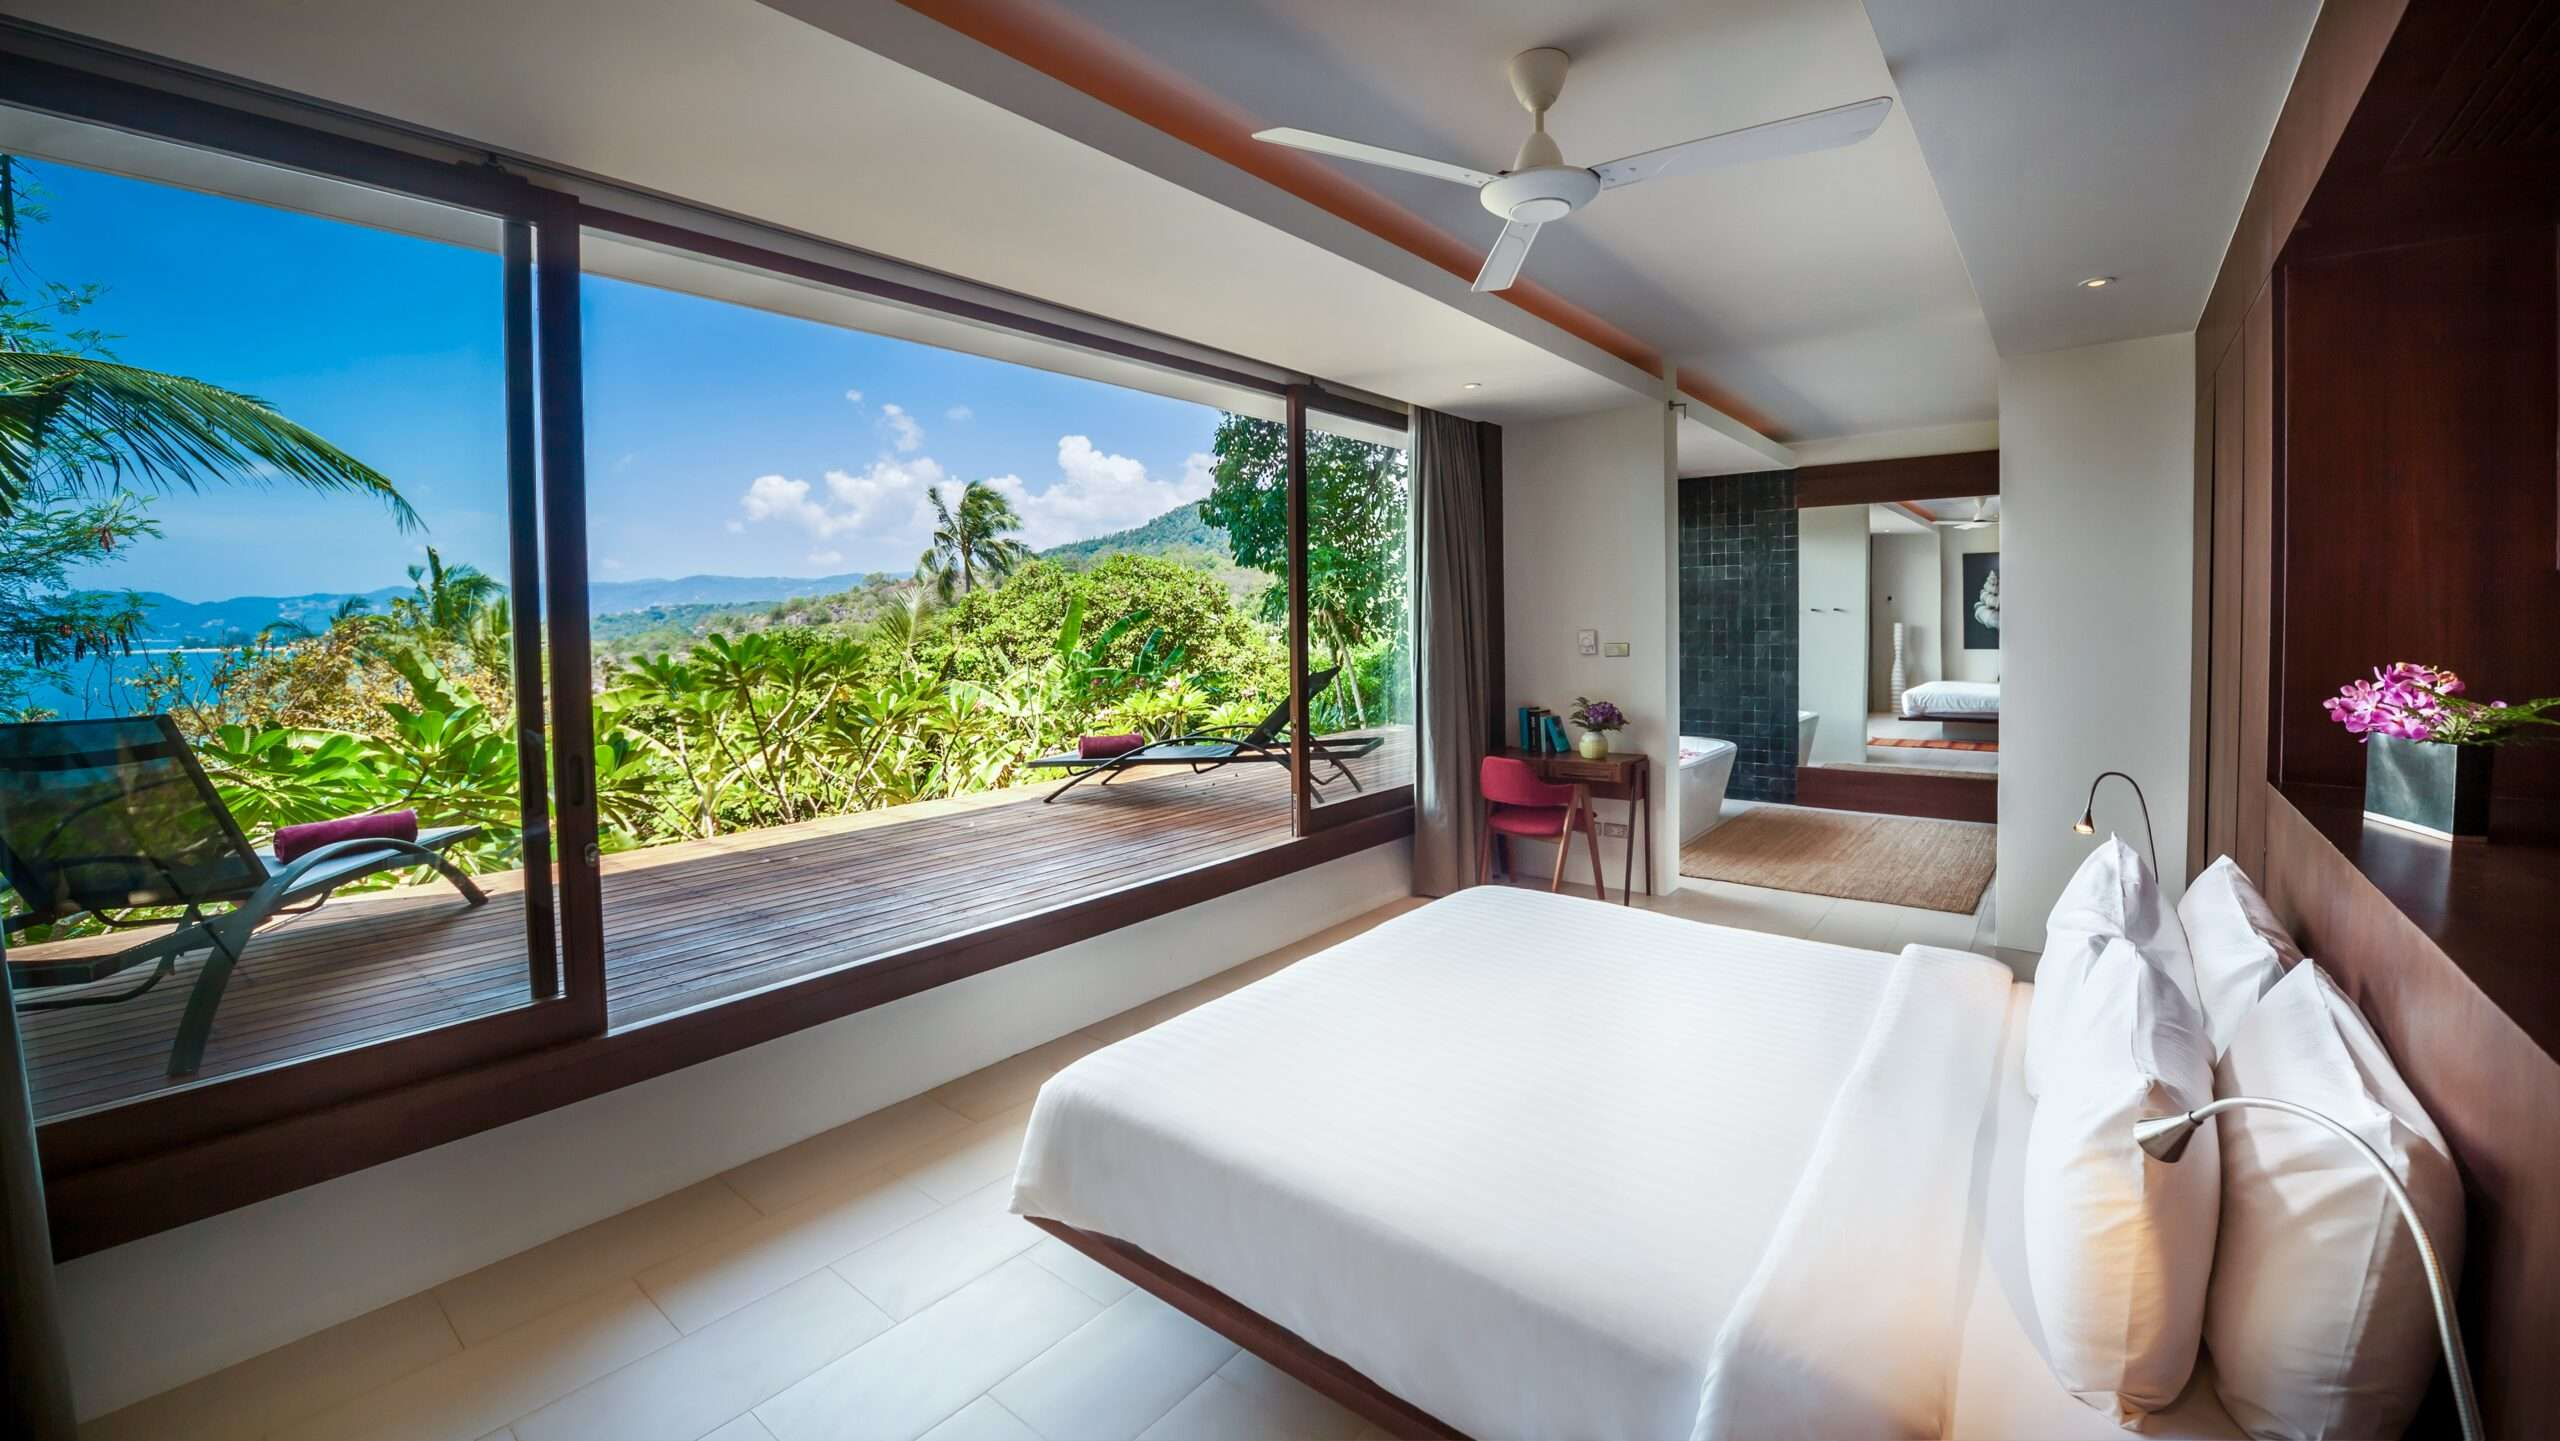 large bedroom with glass wall leading to a balcony overlooking the sea at Villa Hin Koh Samui